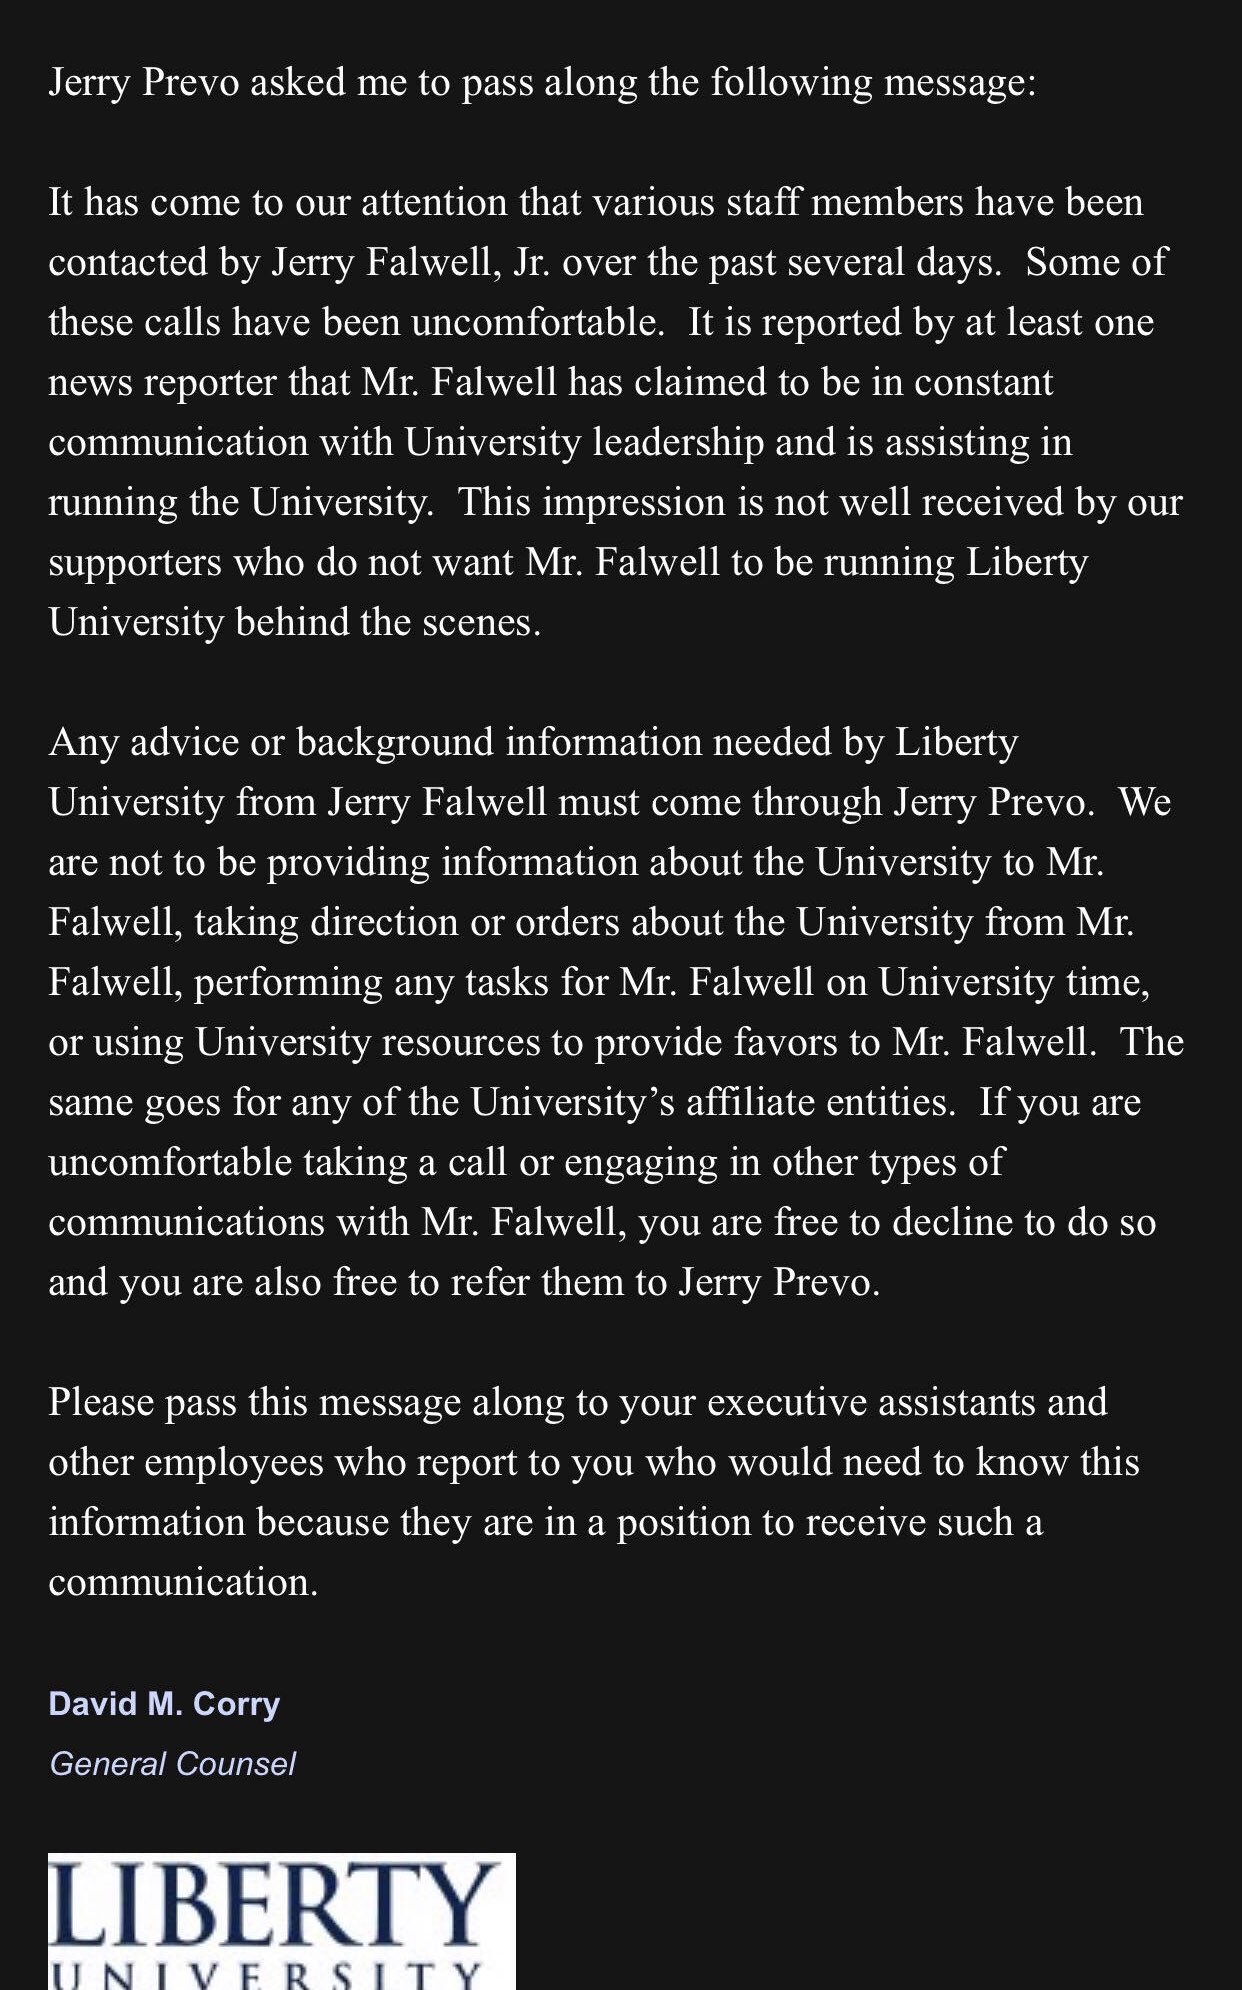 David Corry Letter About Falwell